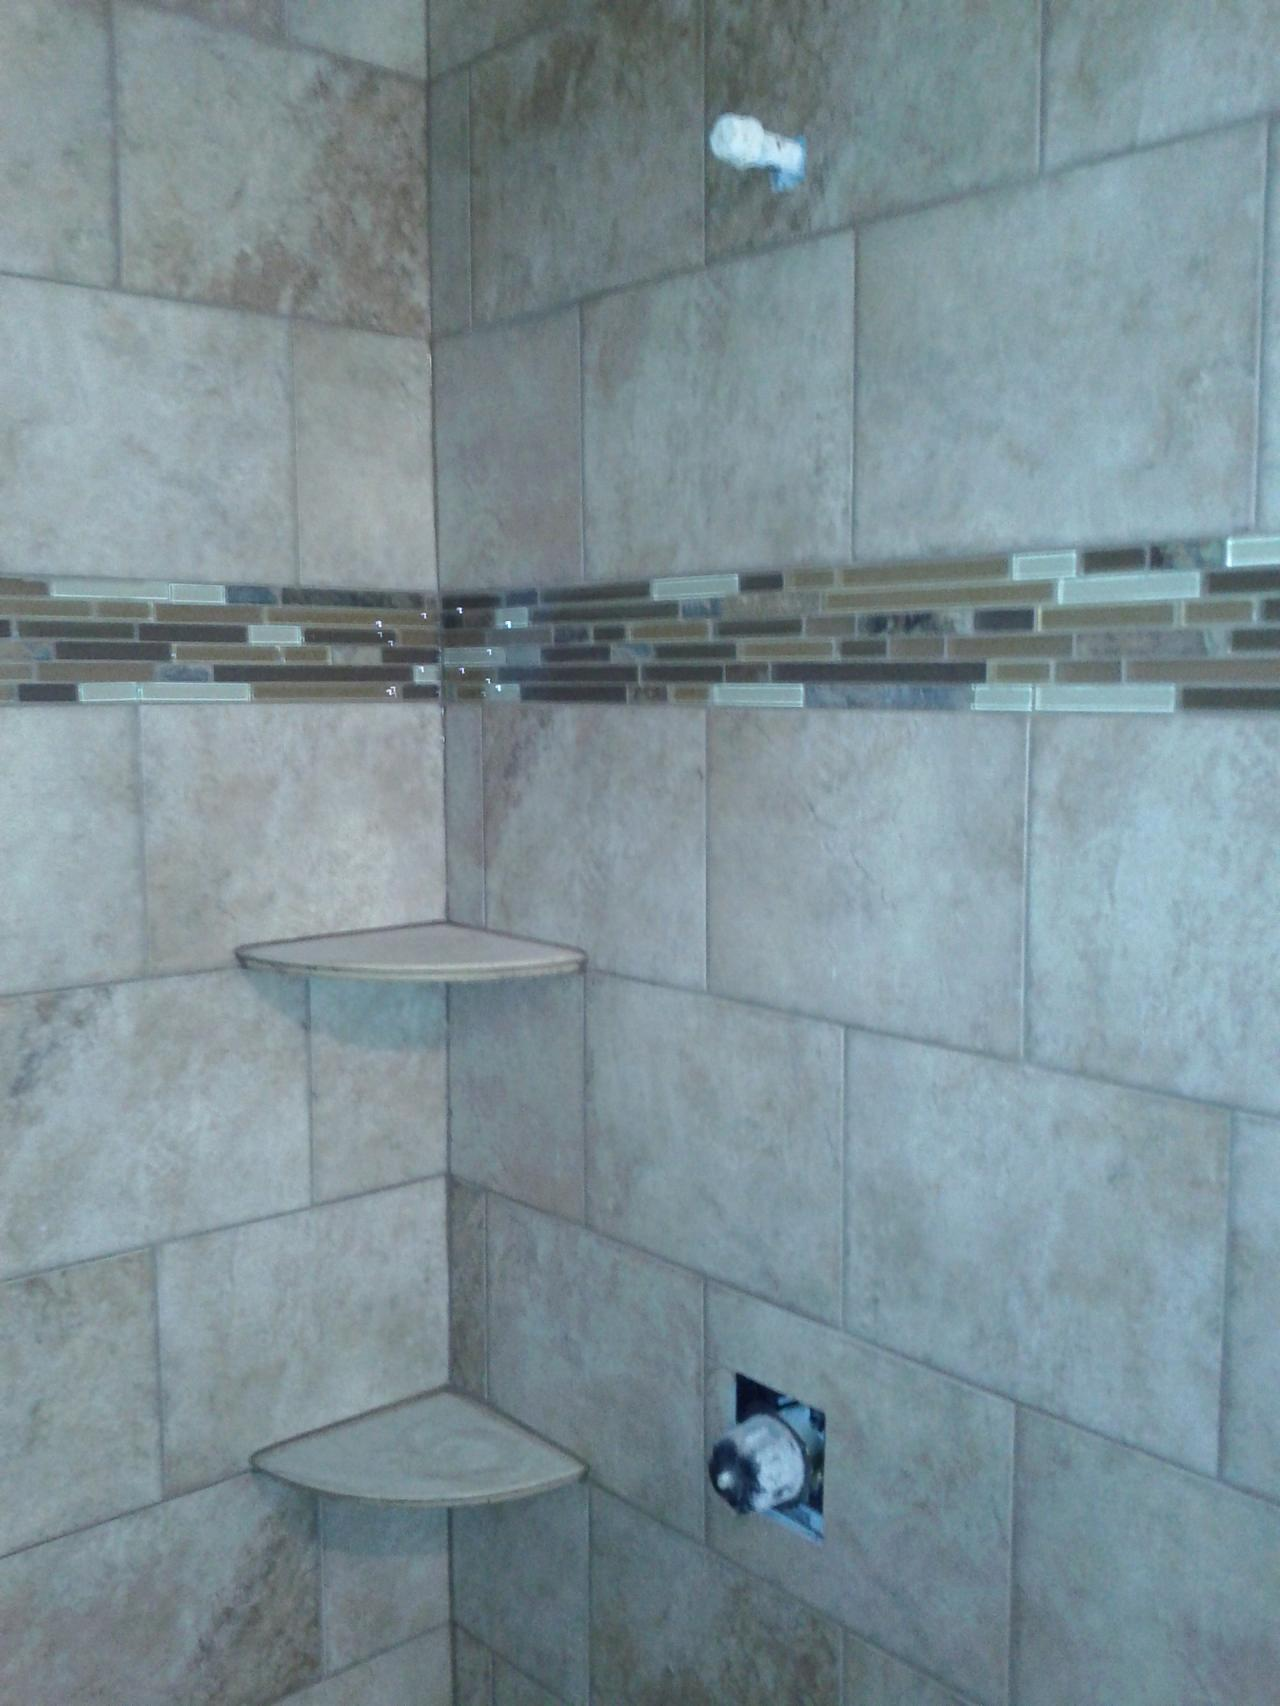 brick_pattern_tile_shower_with_shelves_in_bathroom.53103937_large